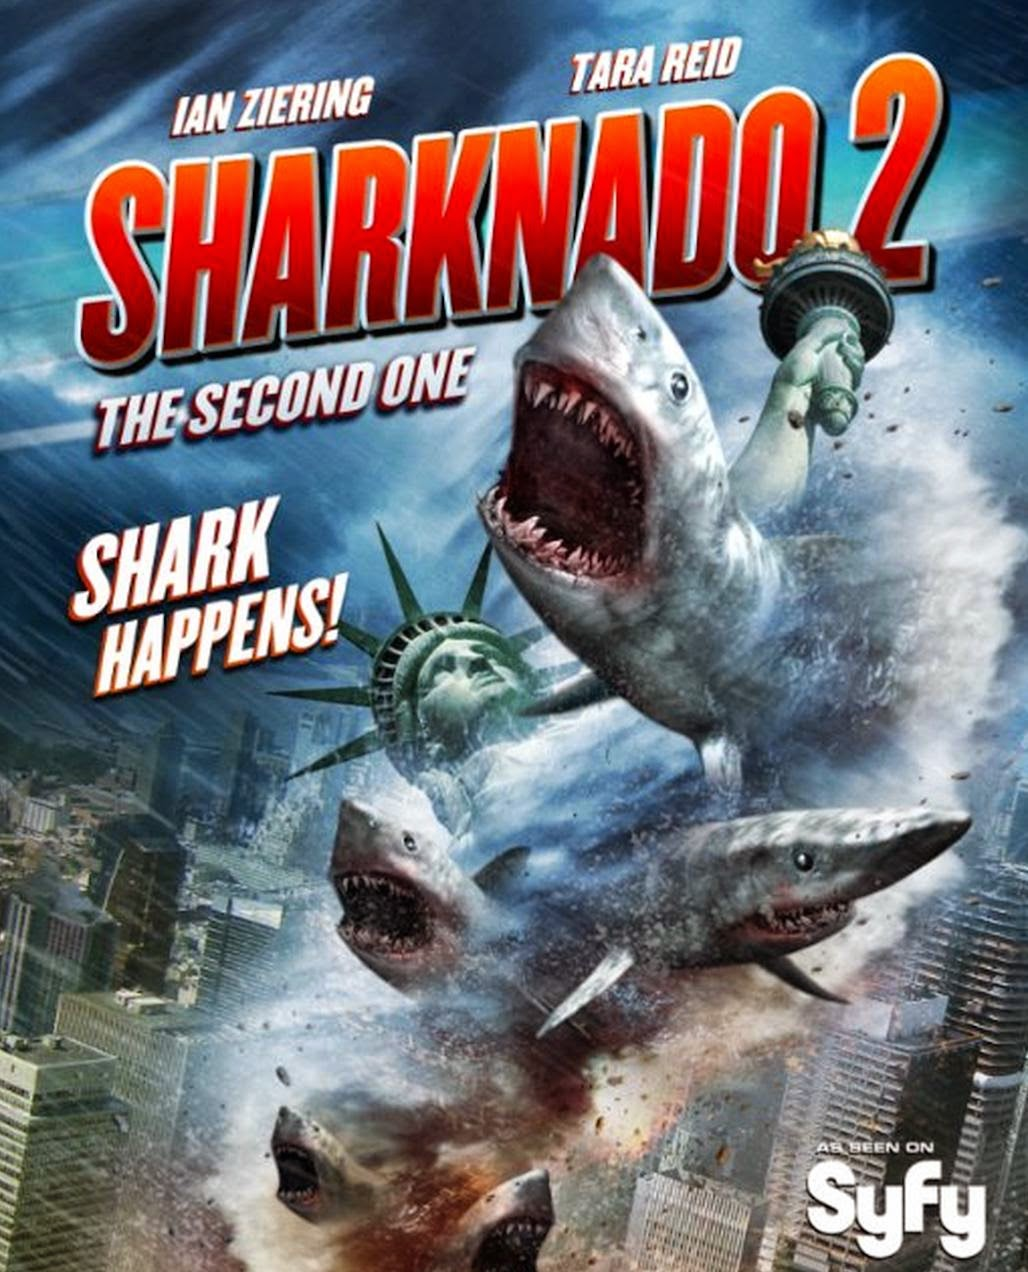 Download Filme Sharknado 2: A Segunda Onda HDTVRip AVI + RMVB Legendado